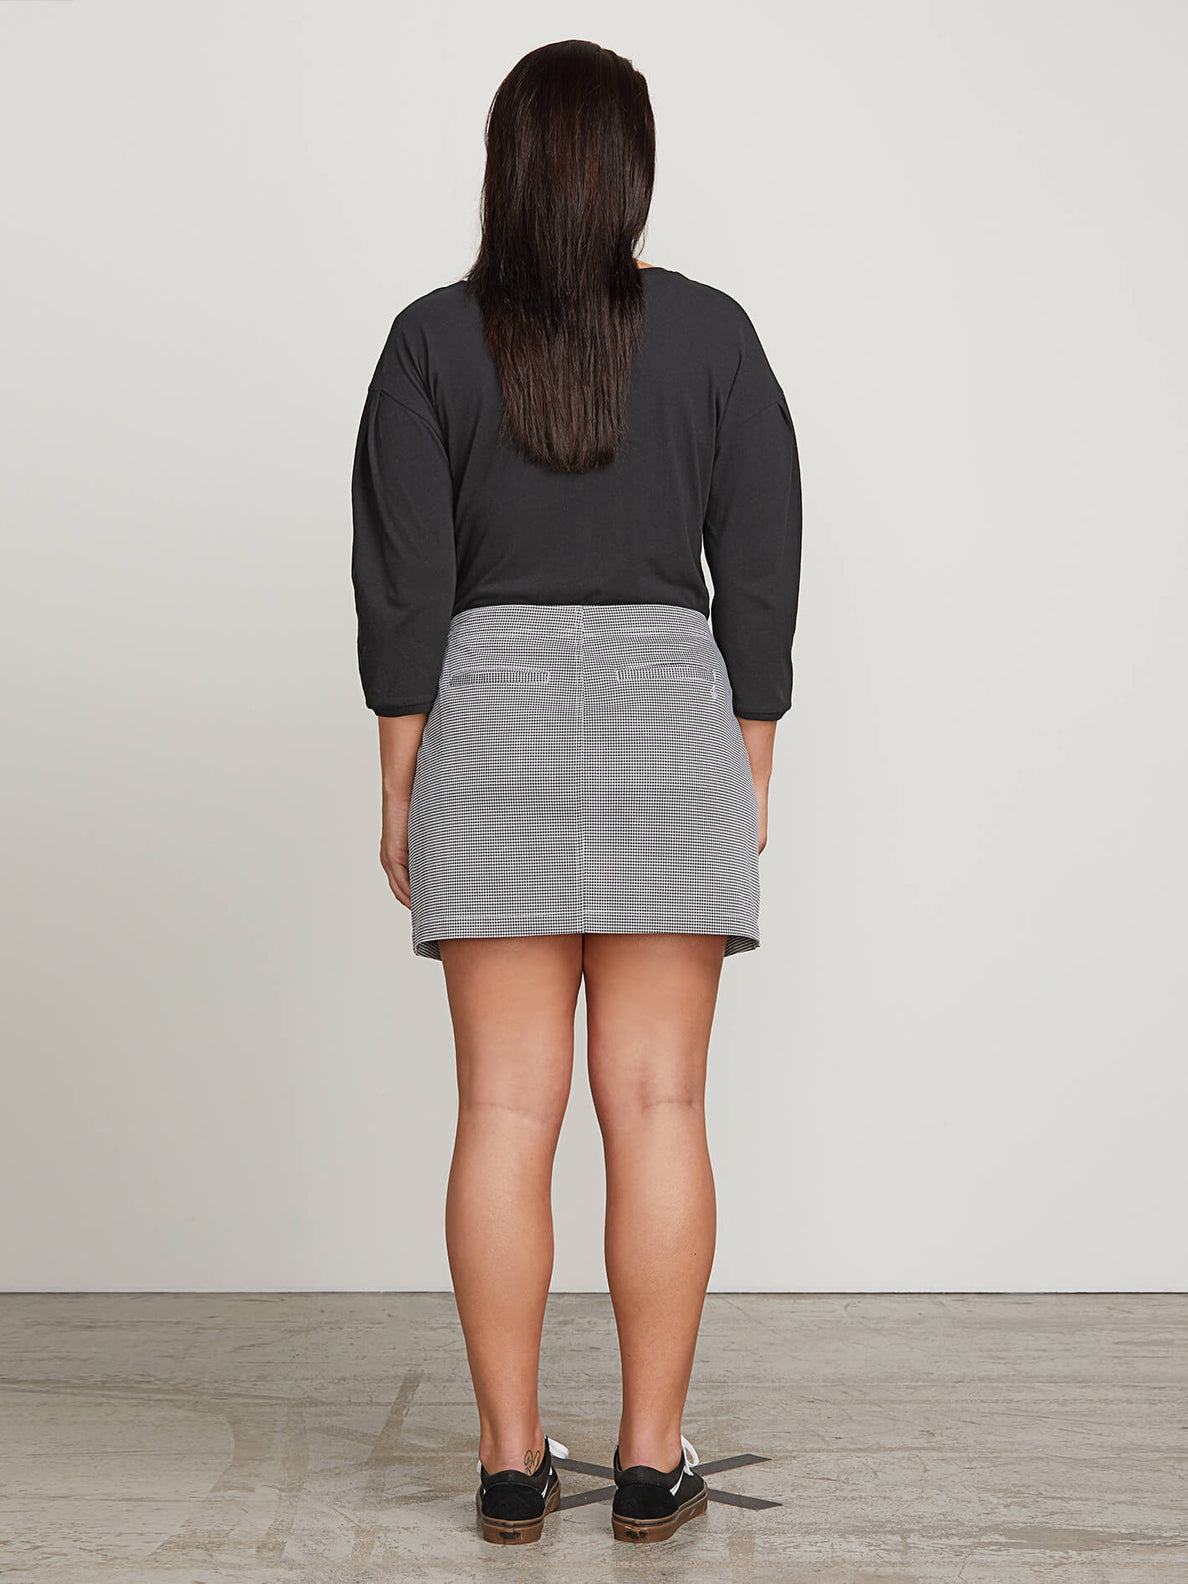 Frochickie Skirt In Black Combo, Back Extended Size View